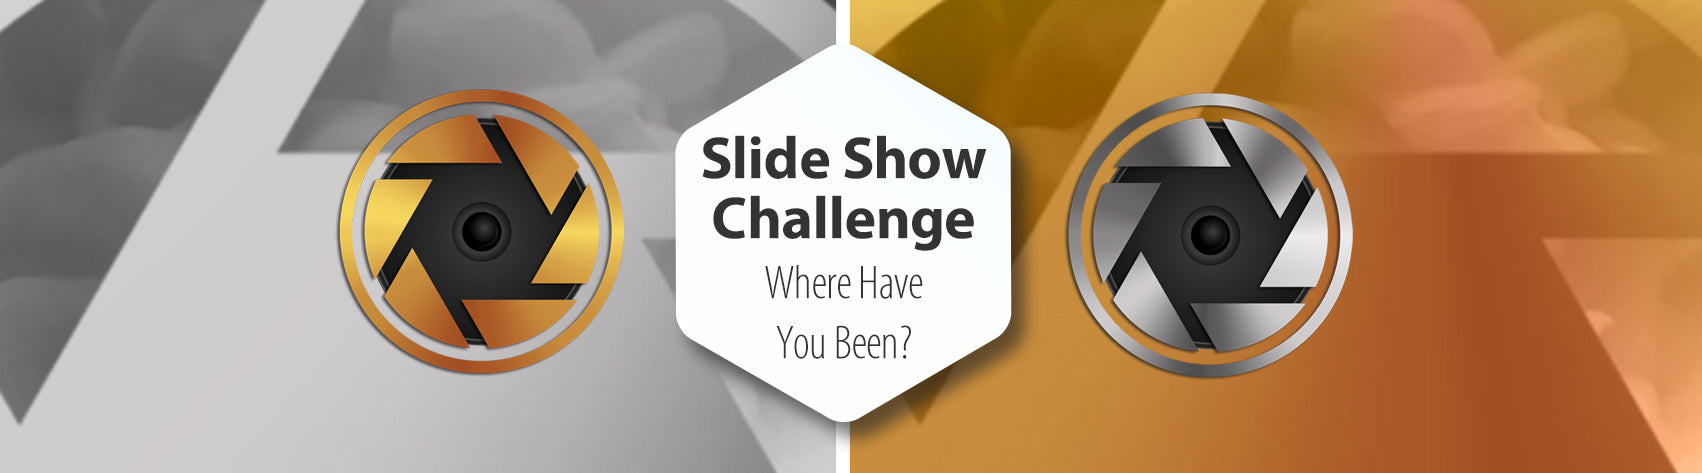 Slide Show Challenge - Where Have You Been?